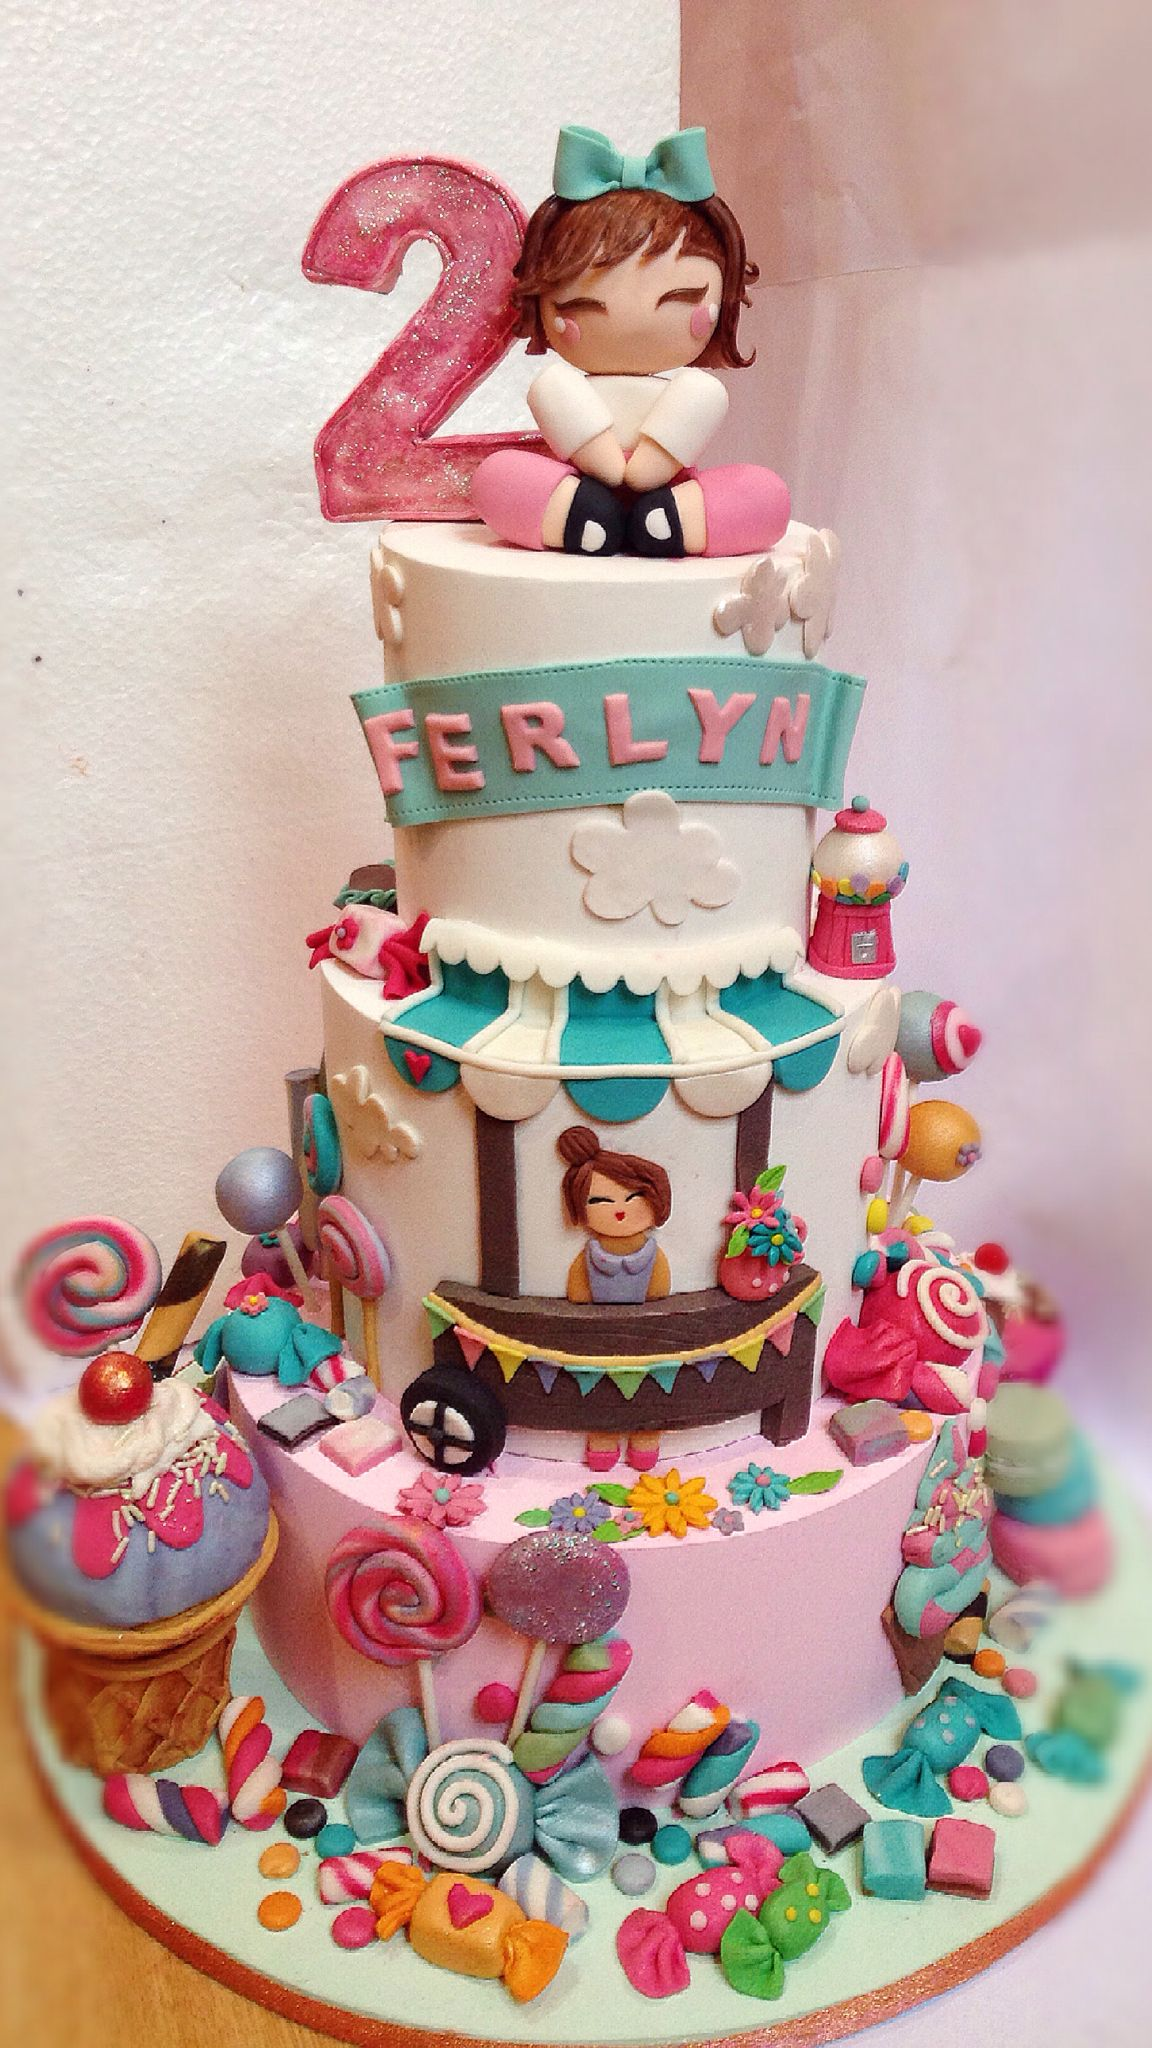 Birthday Cake Candyland Cake Pinterest Cake Birthday Cake And